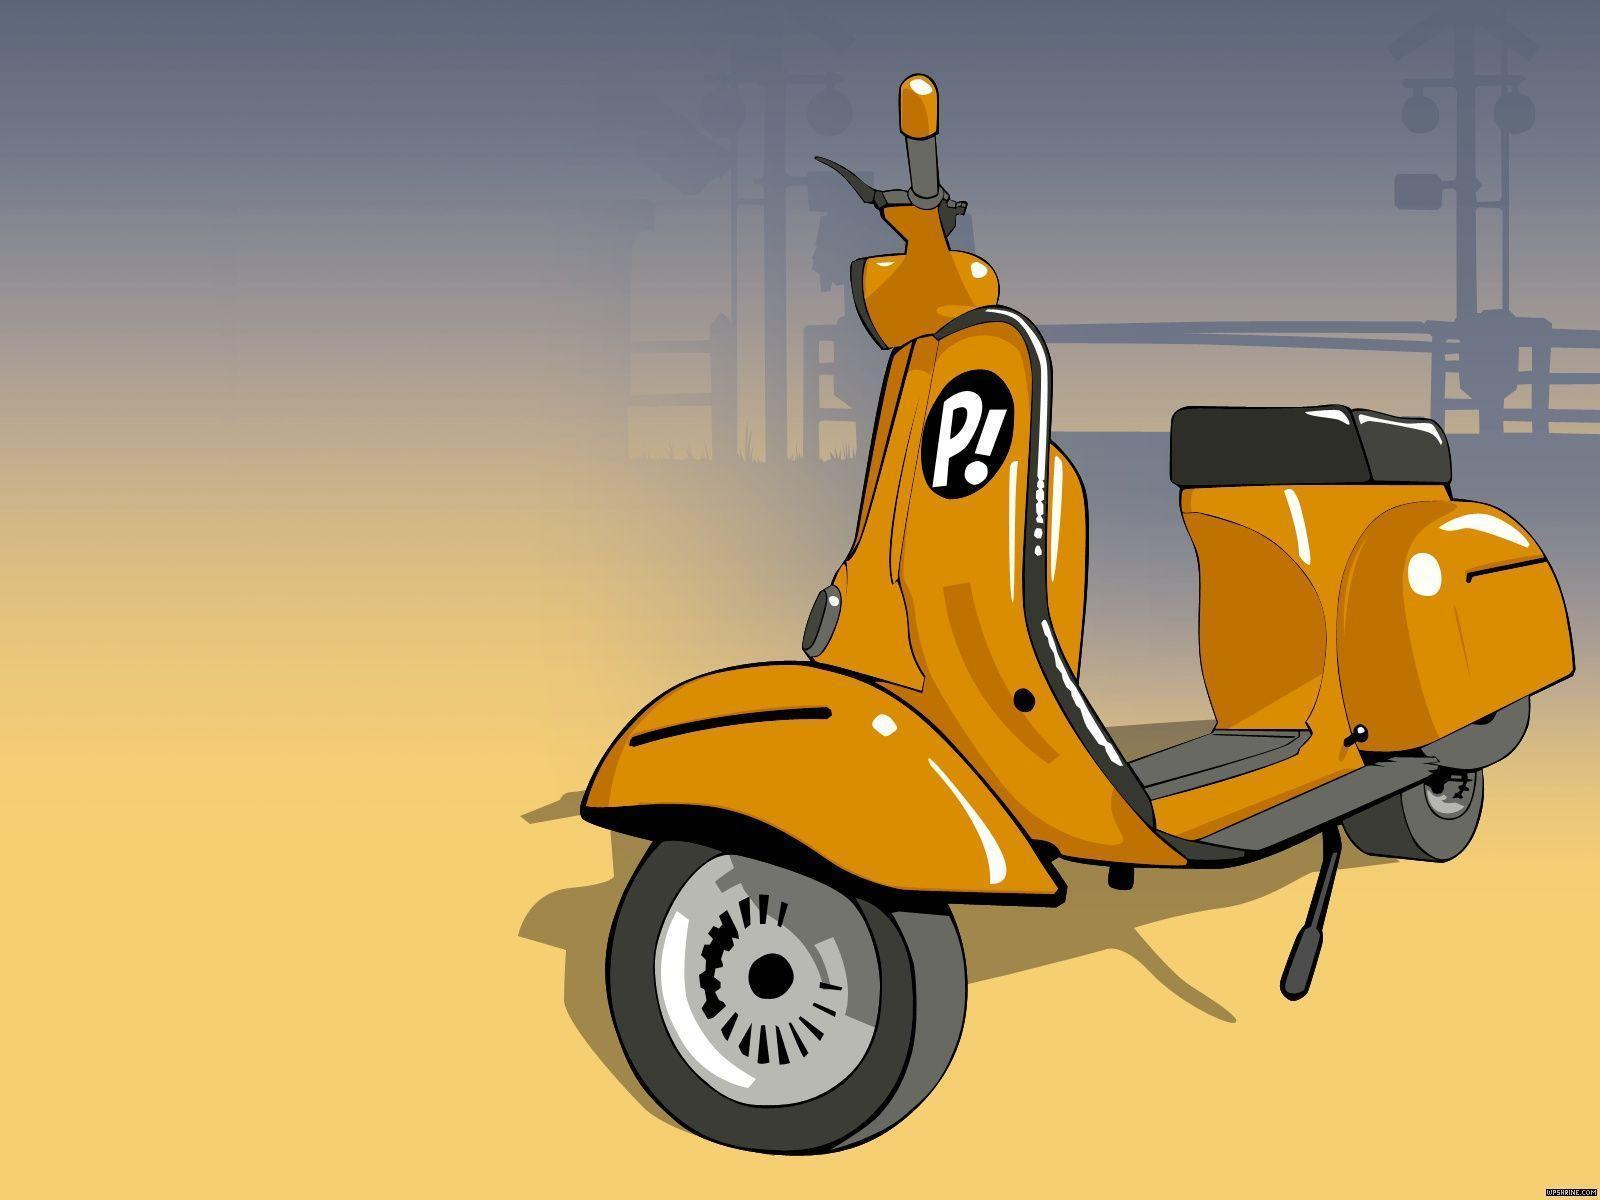 1 Vespa Scooter Wallpapers | Vespa Scooter Backgrounds